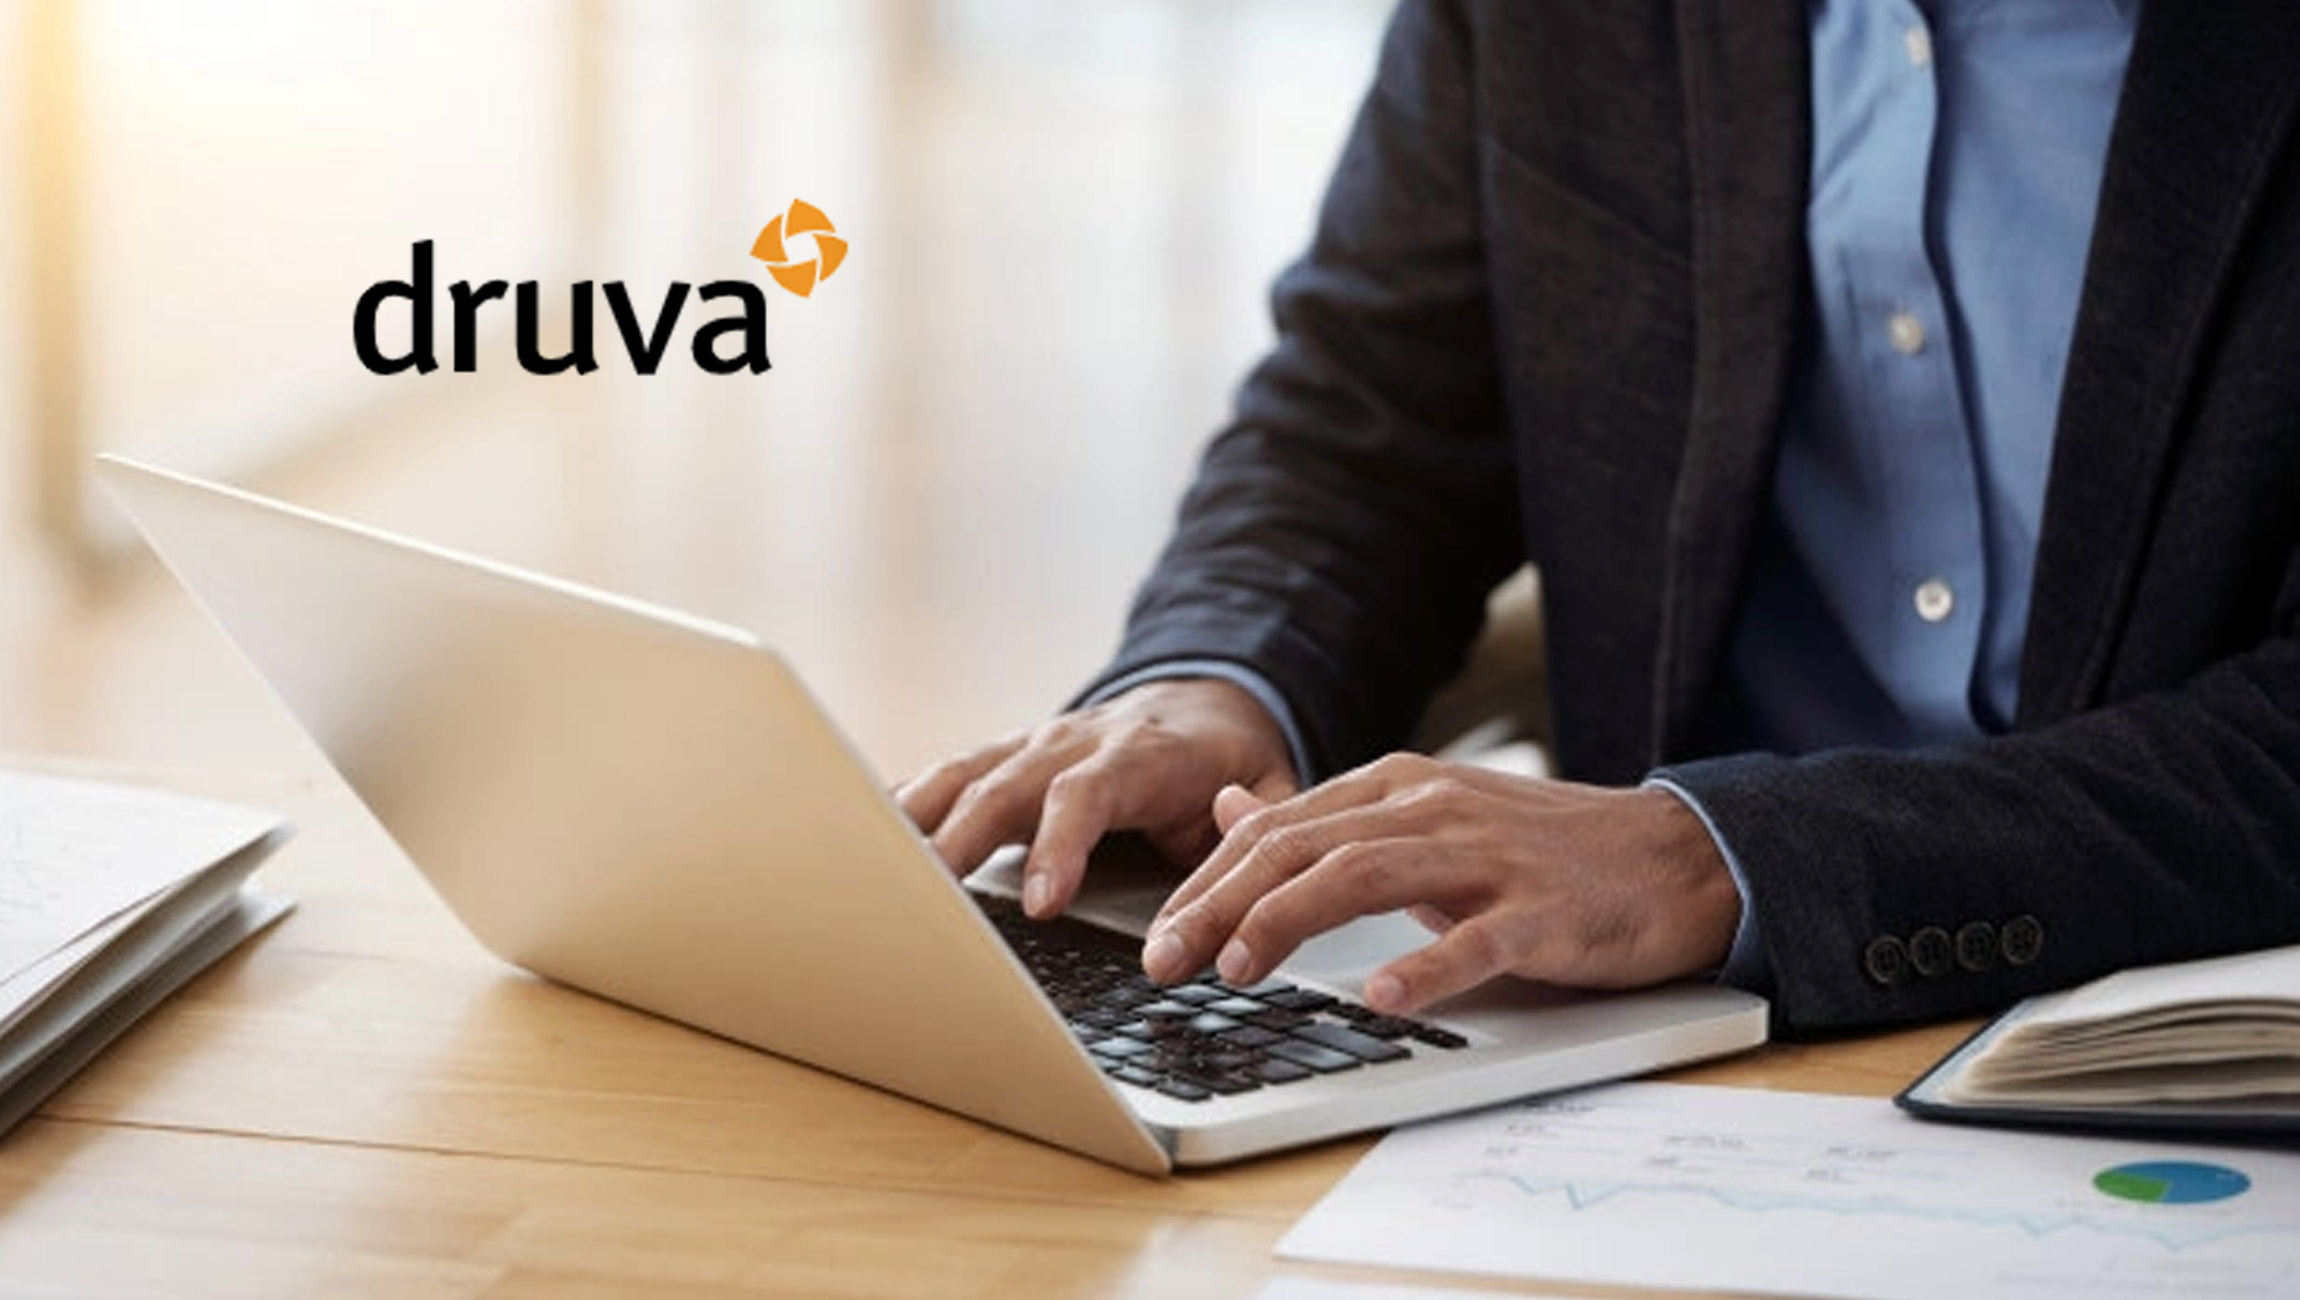 Druva Launches Industry's First MSP Program with the Simplicity, Security, and Scale of a SaaS Platform